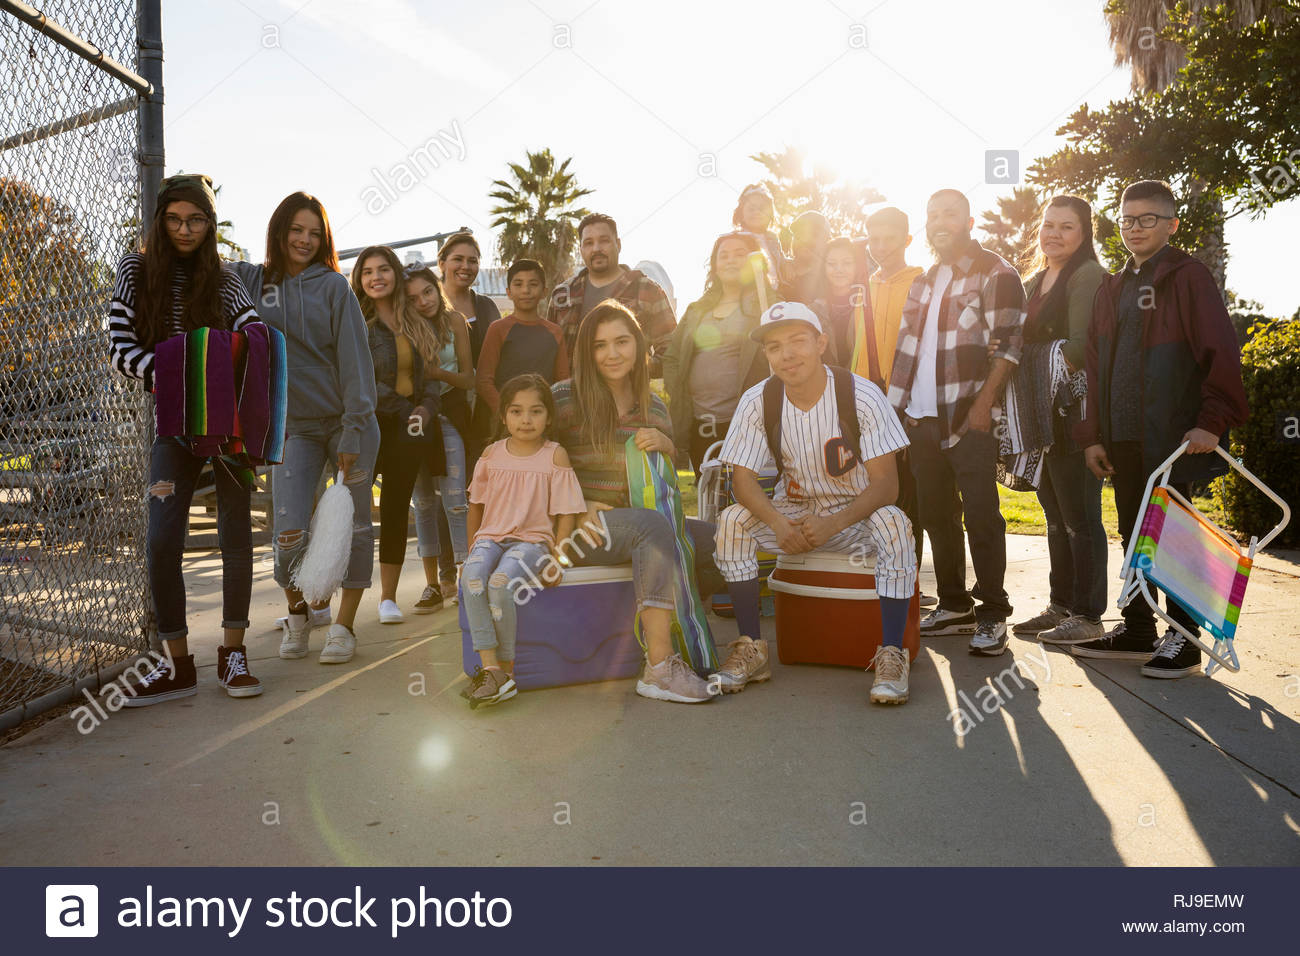 Portrait Latinx family with baseball player in sunny park - Stock Image